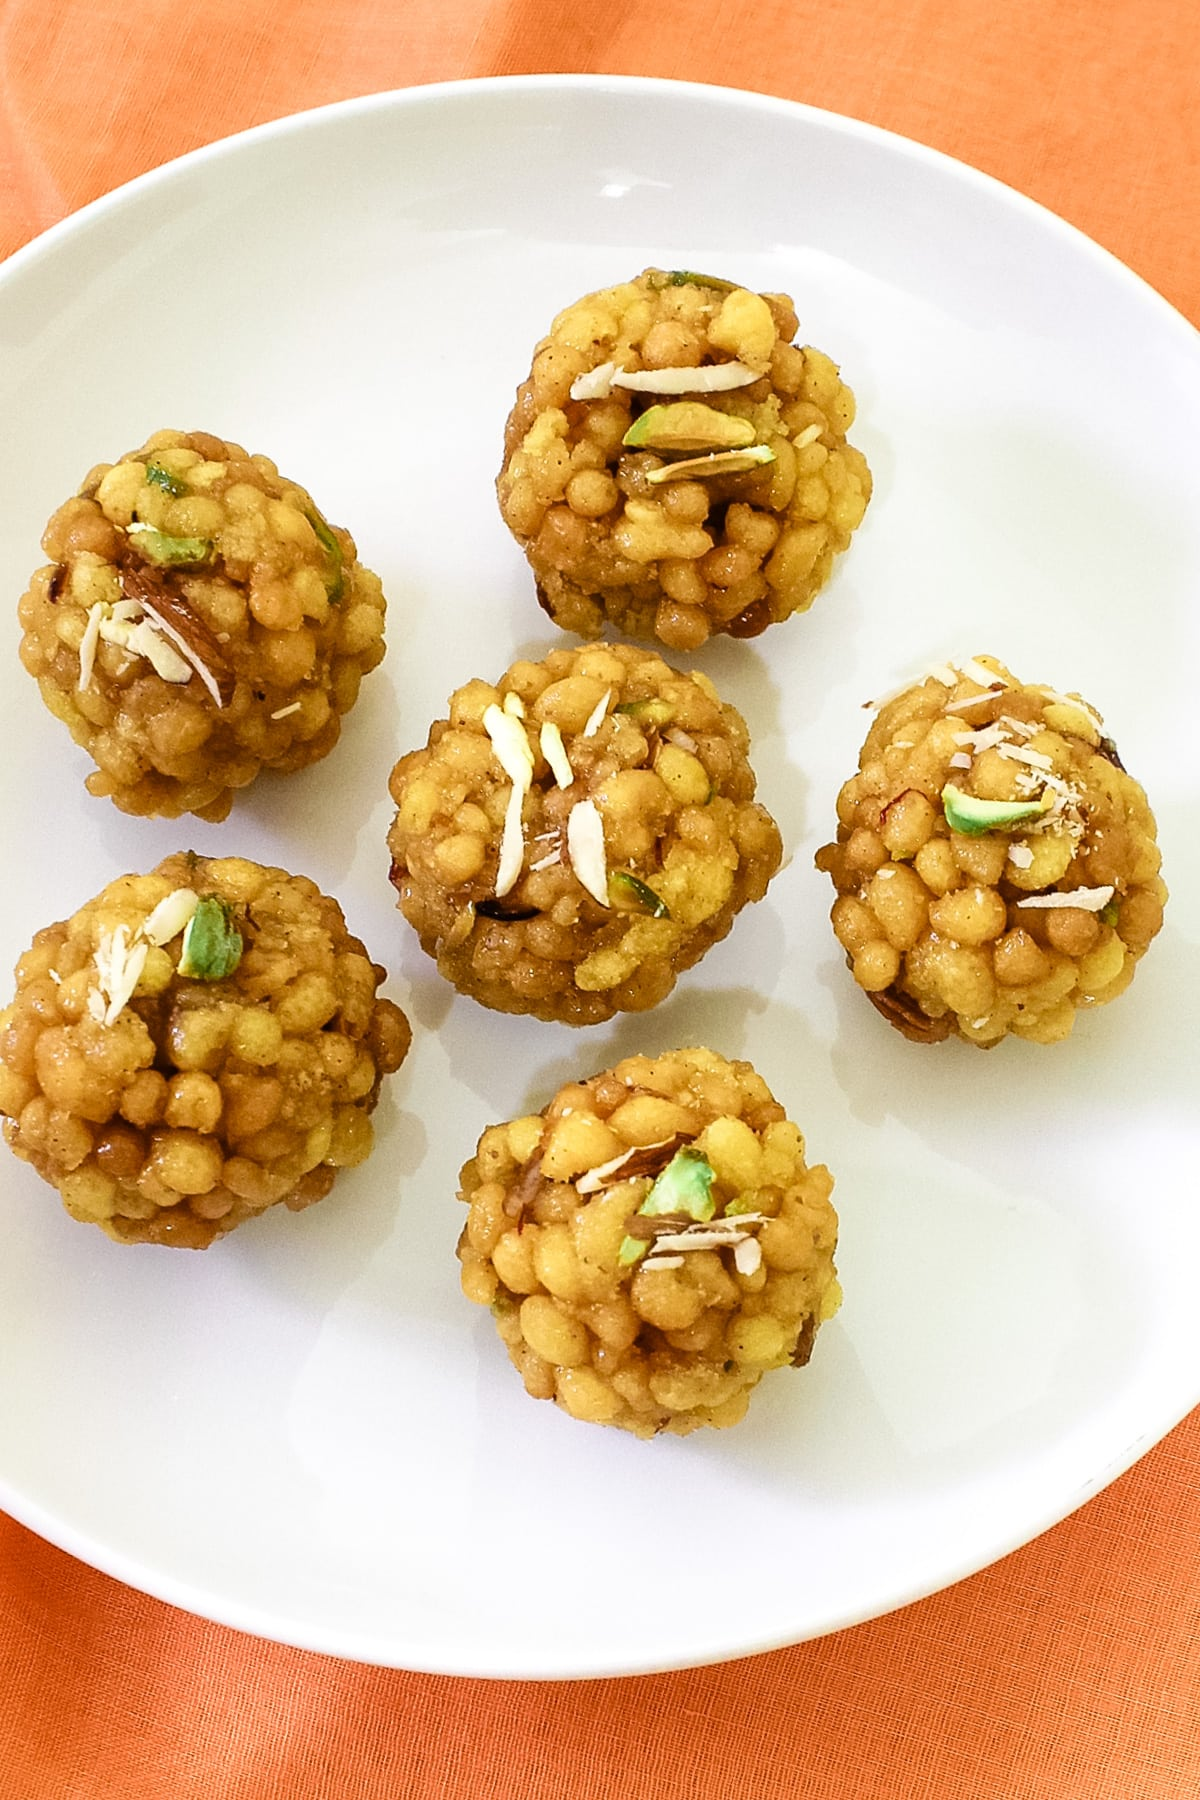 6 boondi ladoo with nuts garnish arranged on white plate with orange linen background